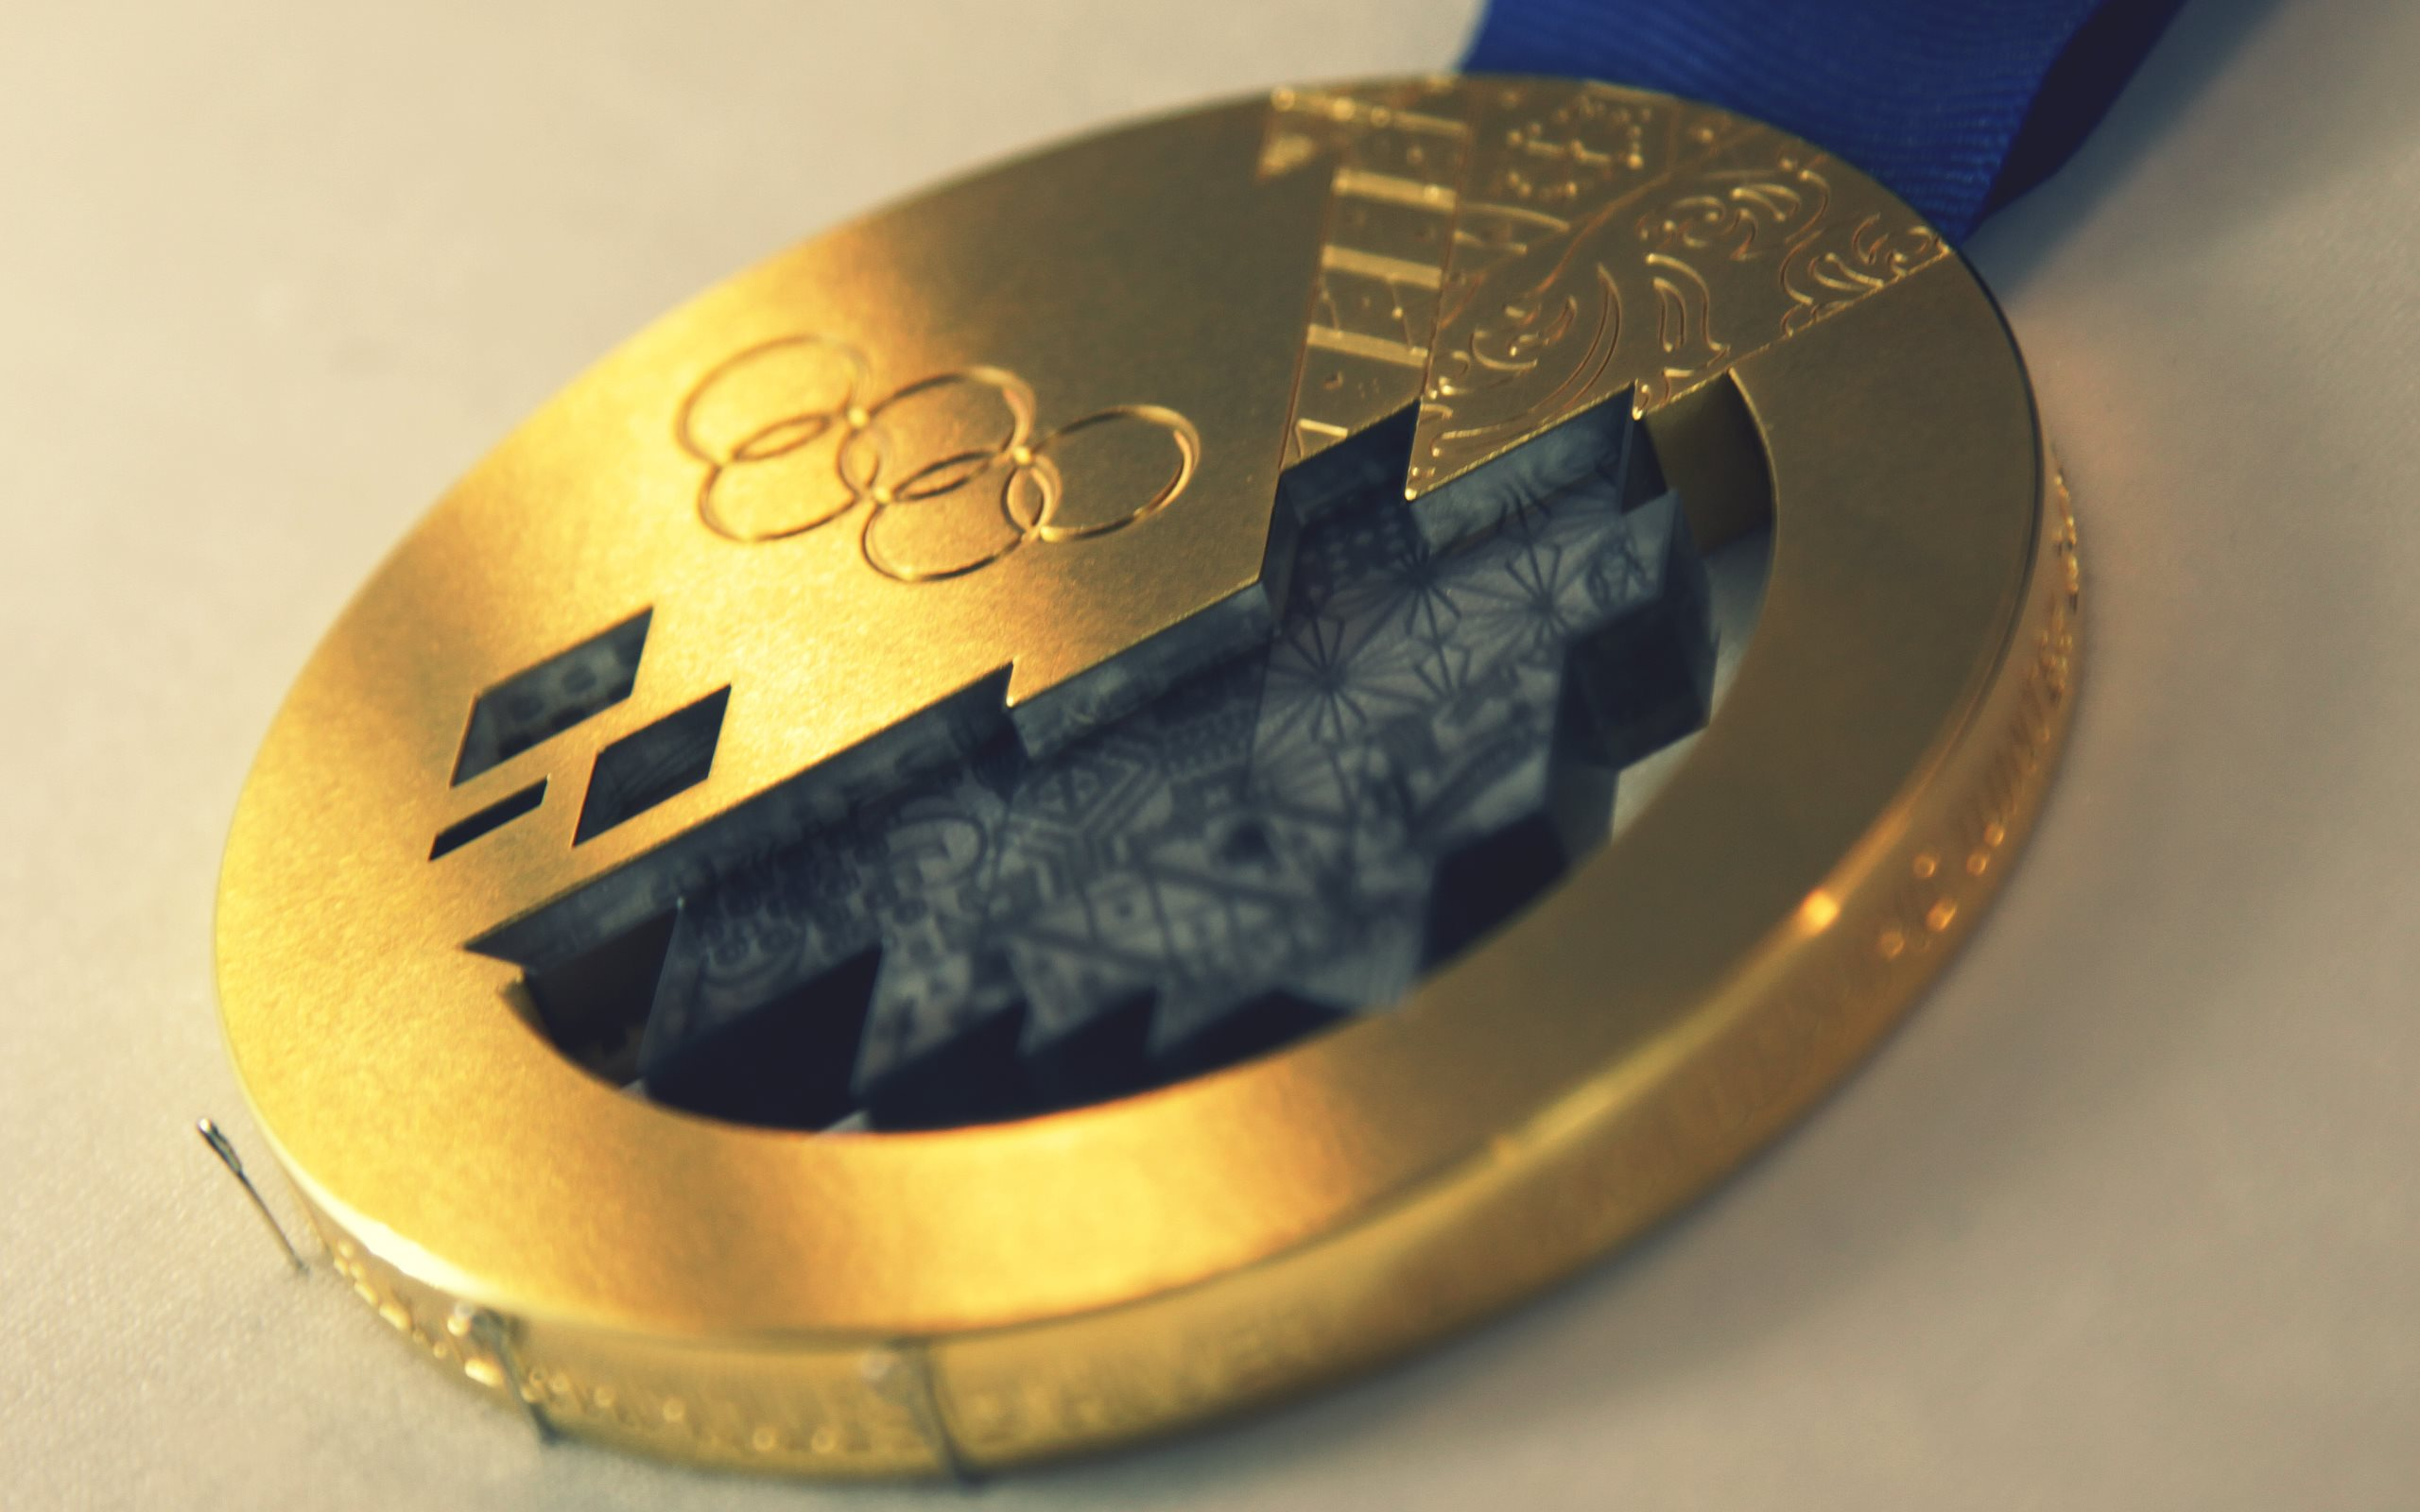 2560x1600 - Olympic Gold Metal Wallpapers 25